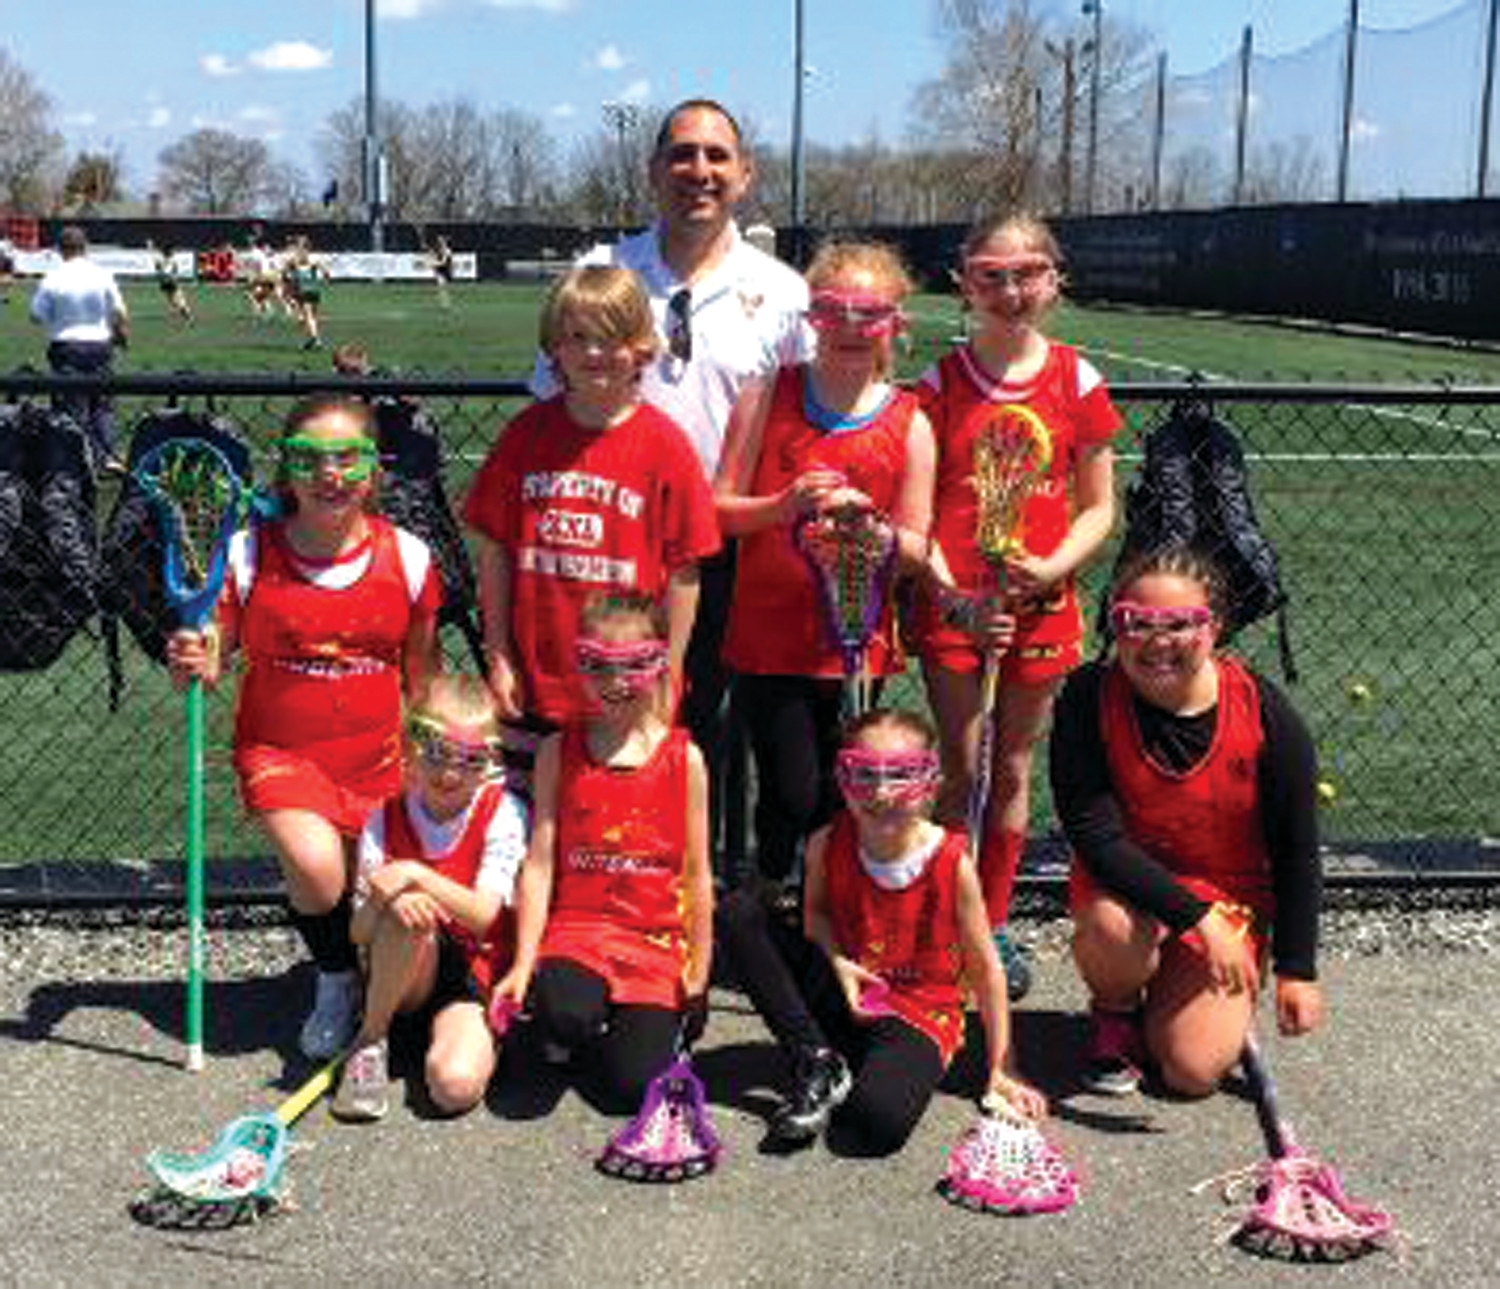 SUPER SQUAD: The Cranston Youth Lacrosse girls 3rd-4th grade team.